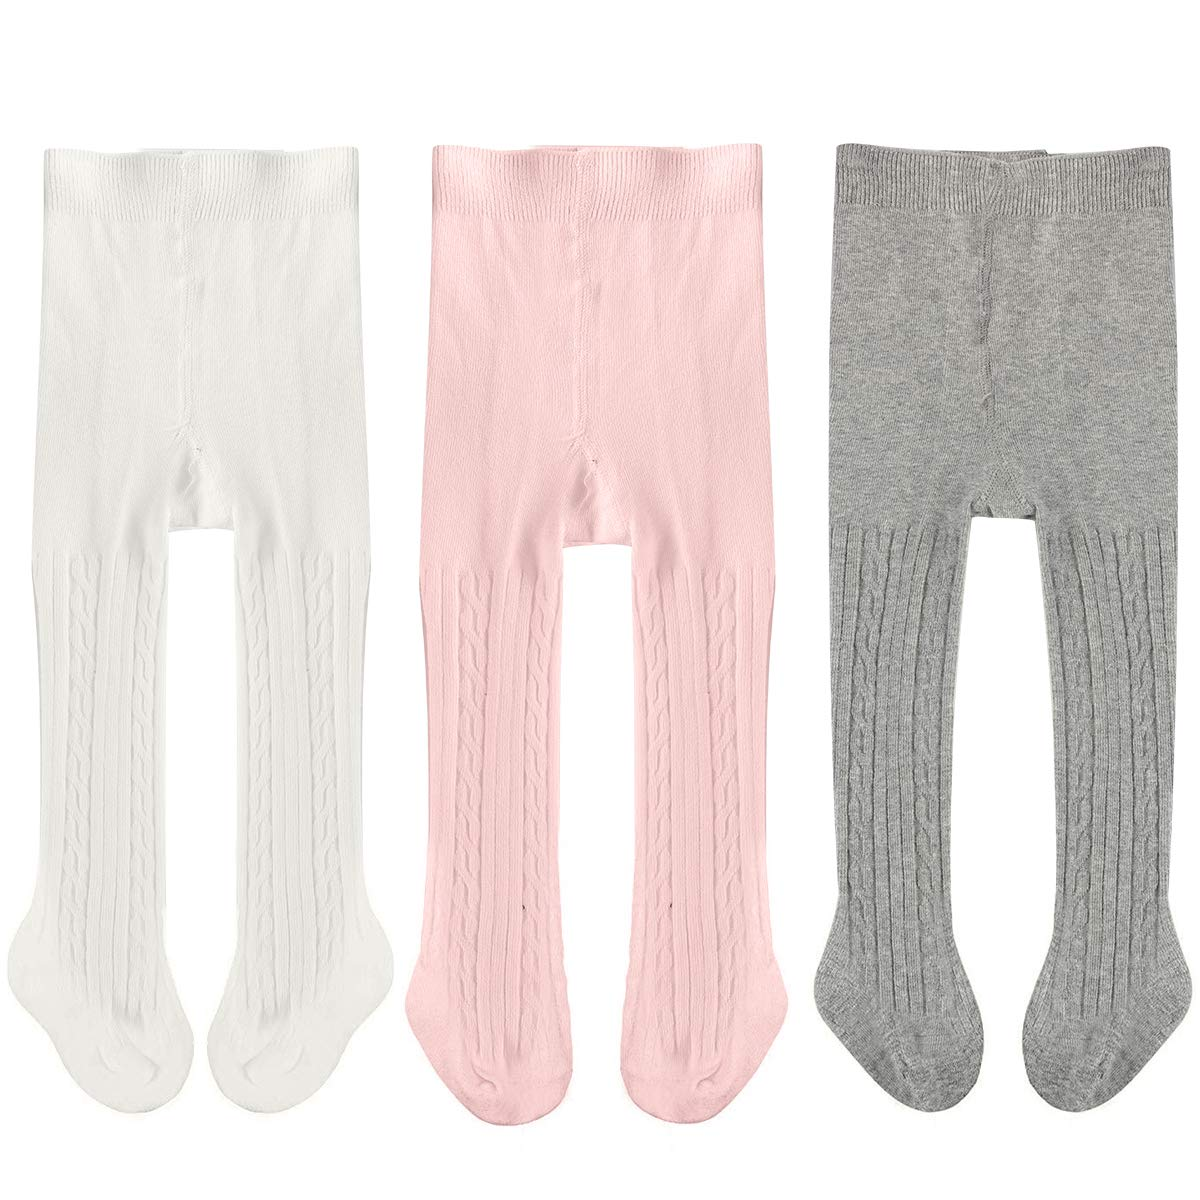 77a271038331b Galleon - 3 Pack Newborn Baby Leggings Cotton Seamless Baby Tights Toddler Infant  Footed Stocking Pantyhose For Baby Boys Girls (12-24 Months, ...